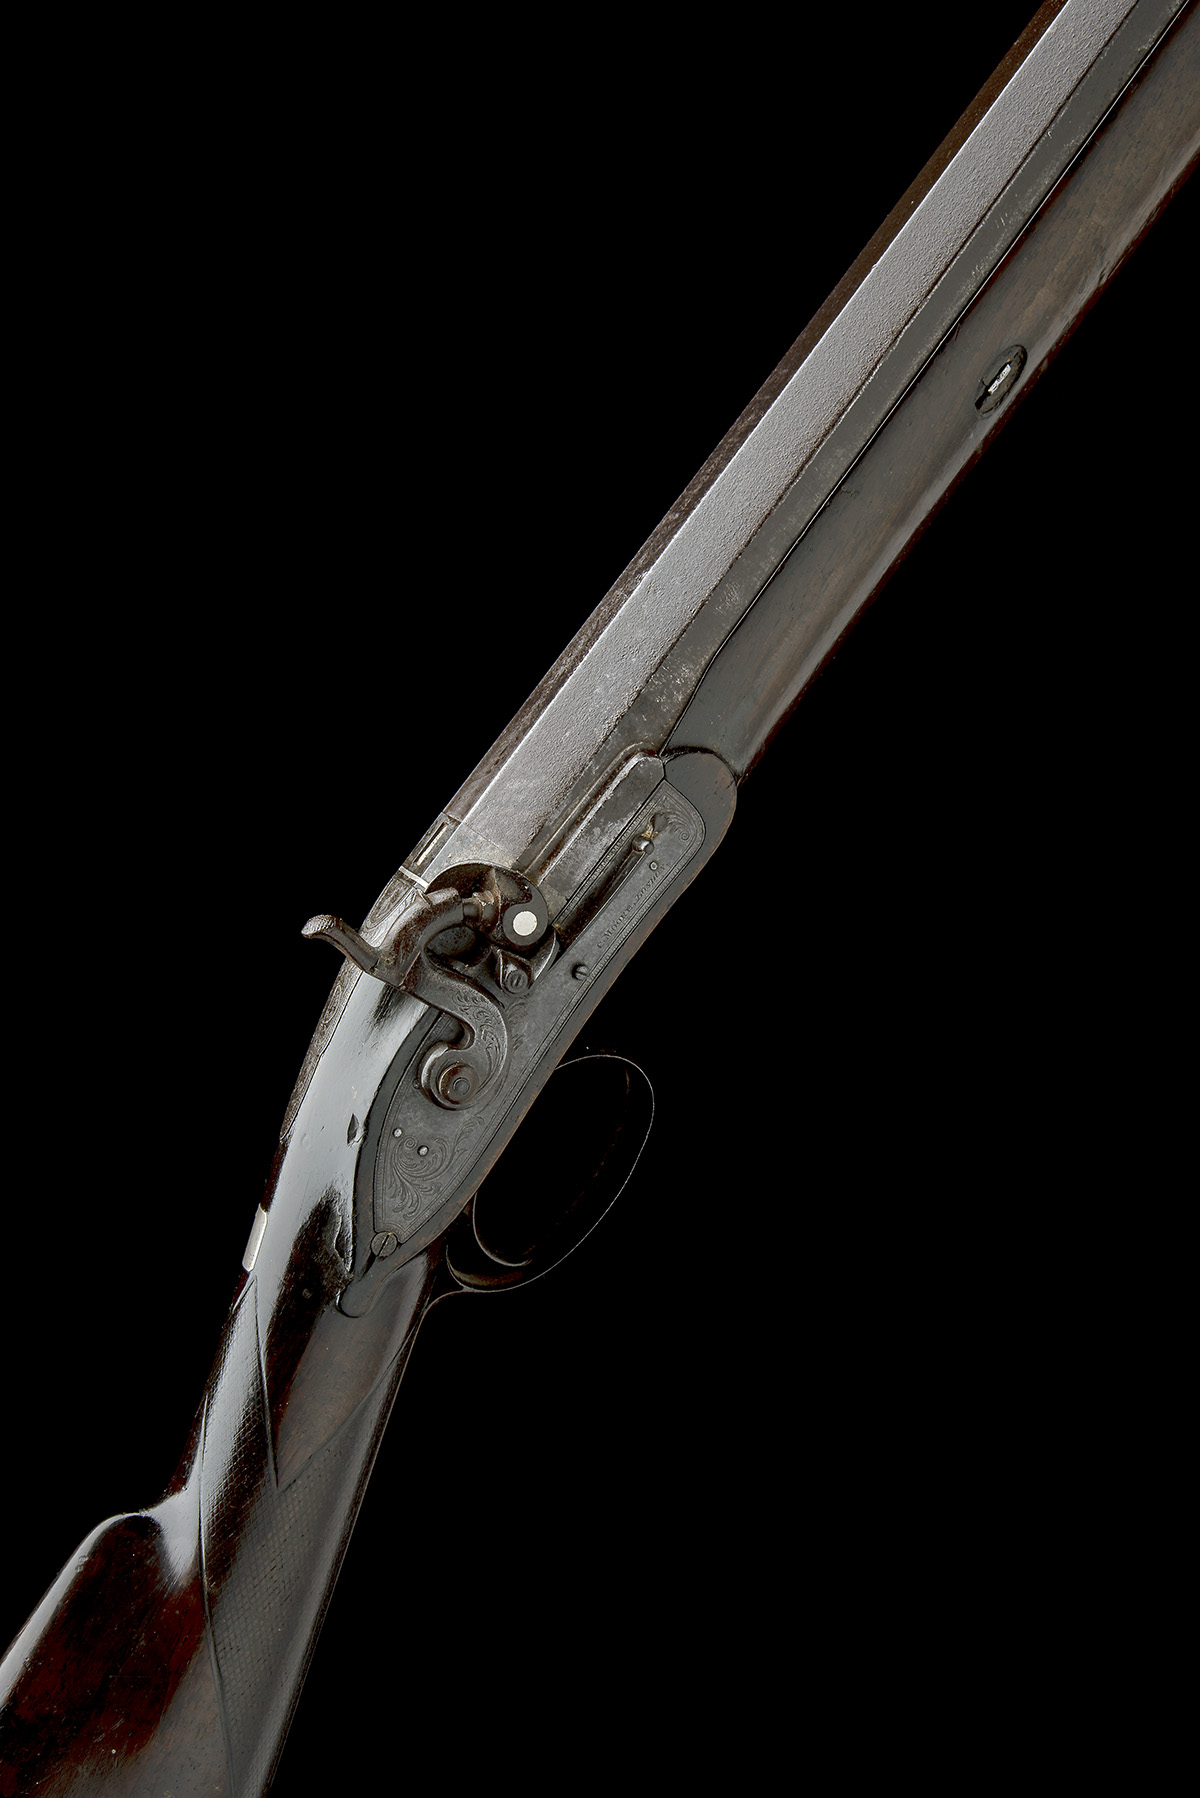 C. MOORE, LONDON A SUBSTANTIAL 8-BORE PERCUSSION FOWLING-PIECE, no visible serial number, made